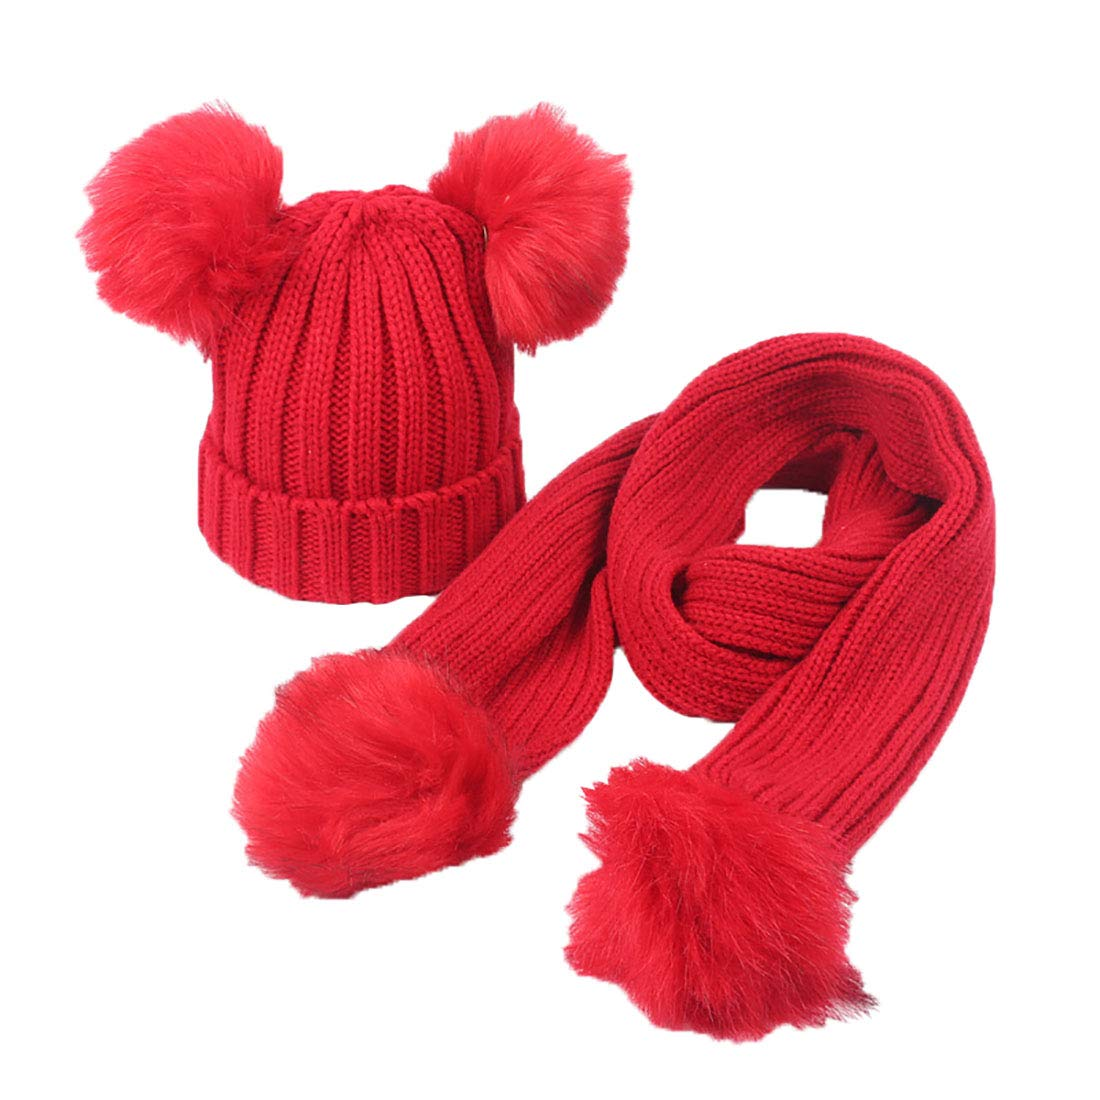 Boomly Kids Knited Winter Pom Pom Hat+ Neck Scarf Children Warm Solid Color Beanie Cap Neck Warmer